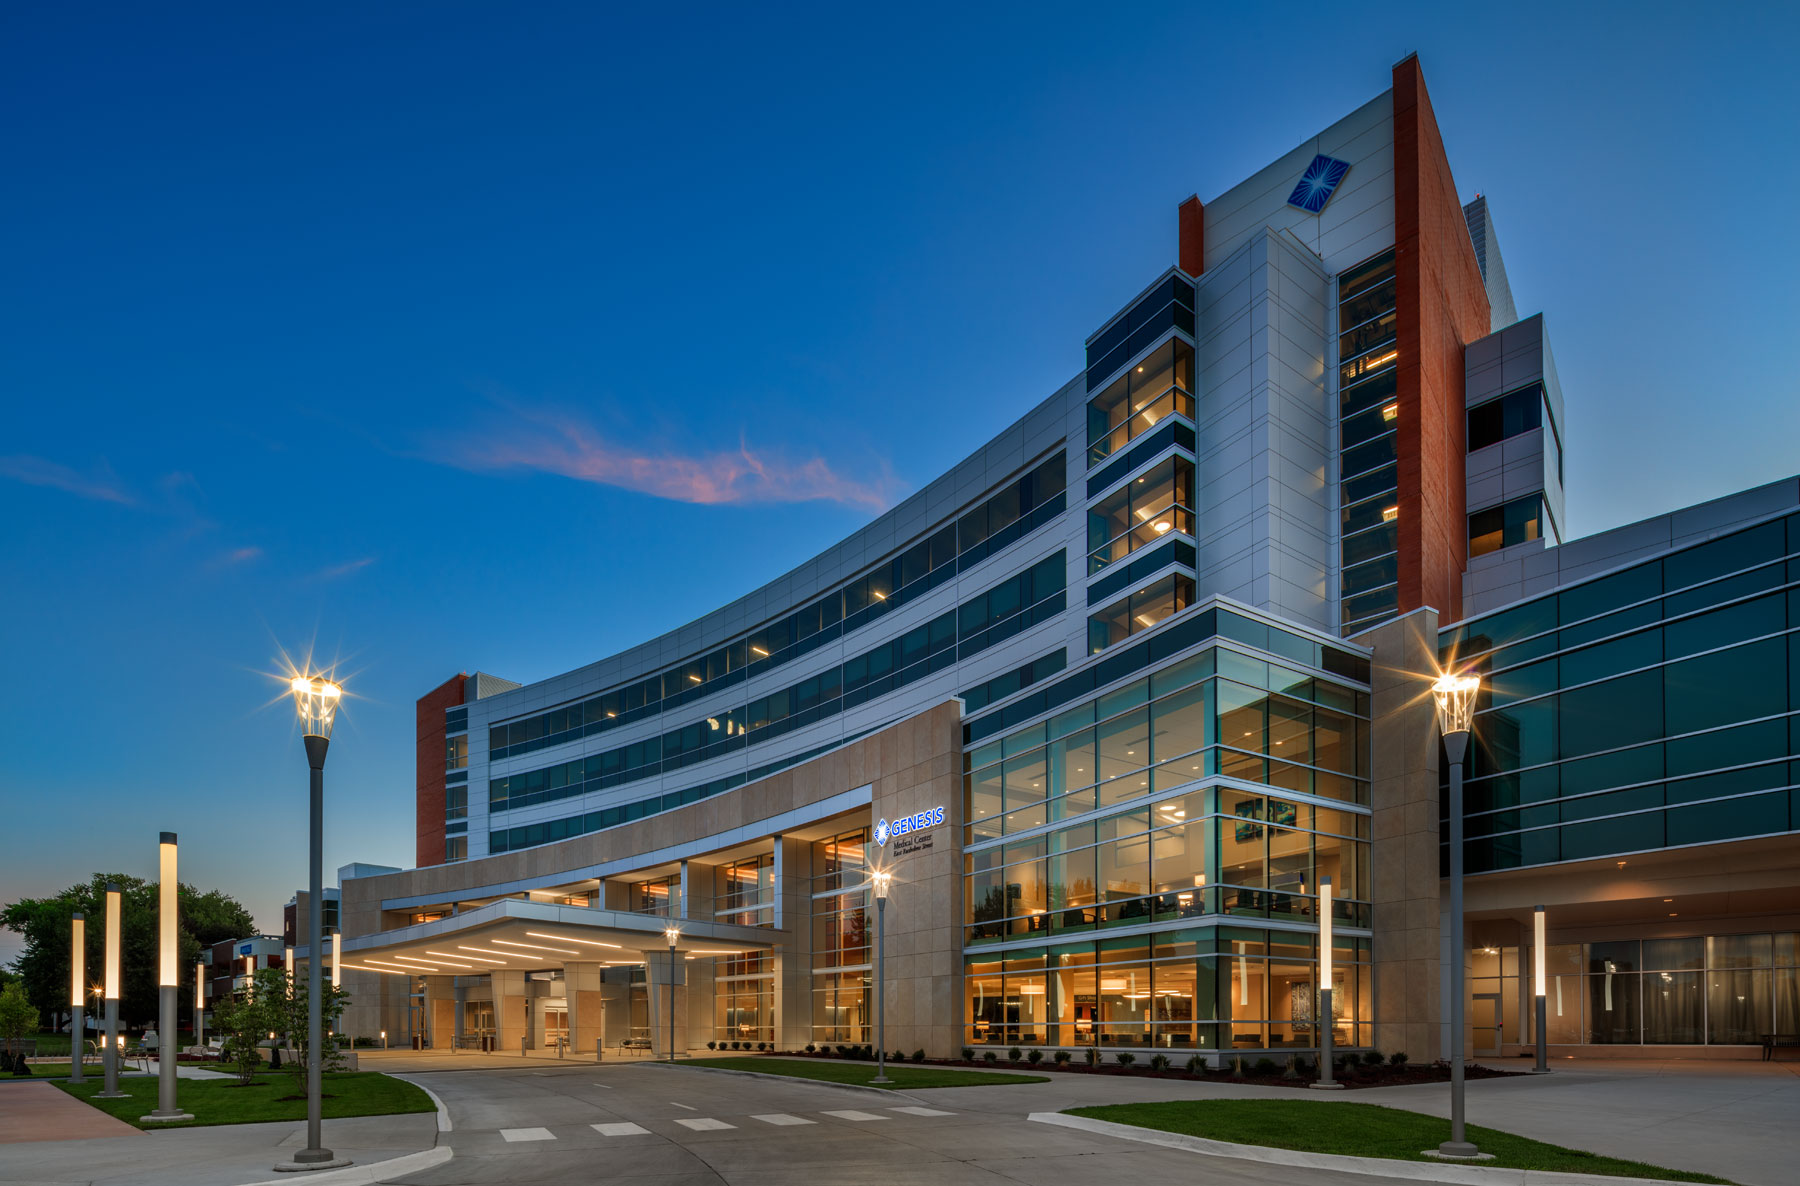 Genesis Health System - East Hospital Expansion